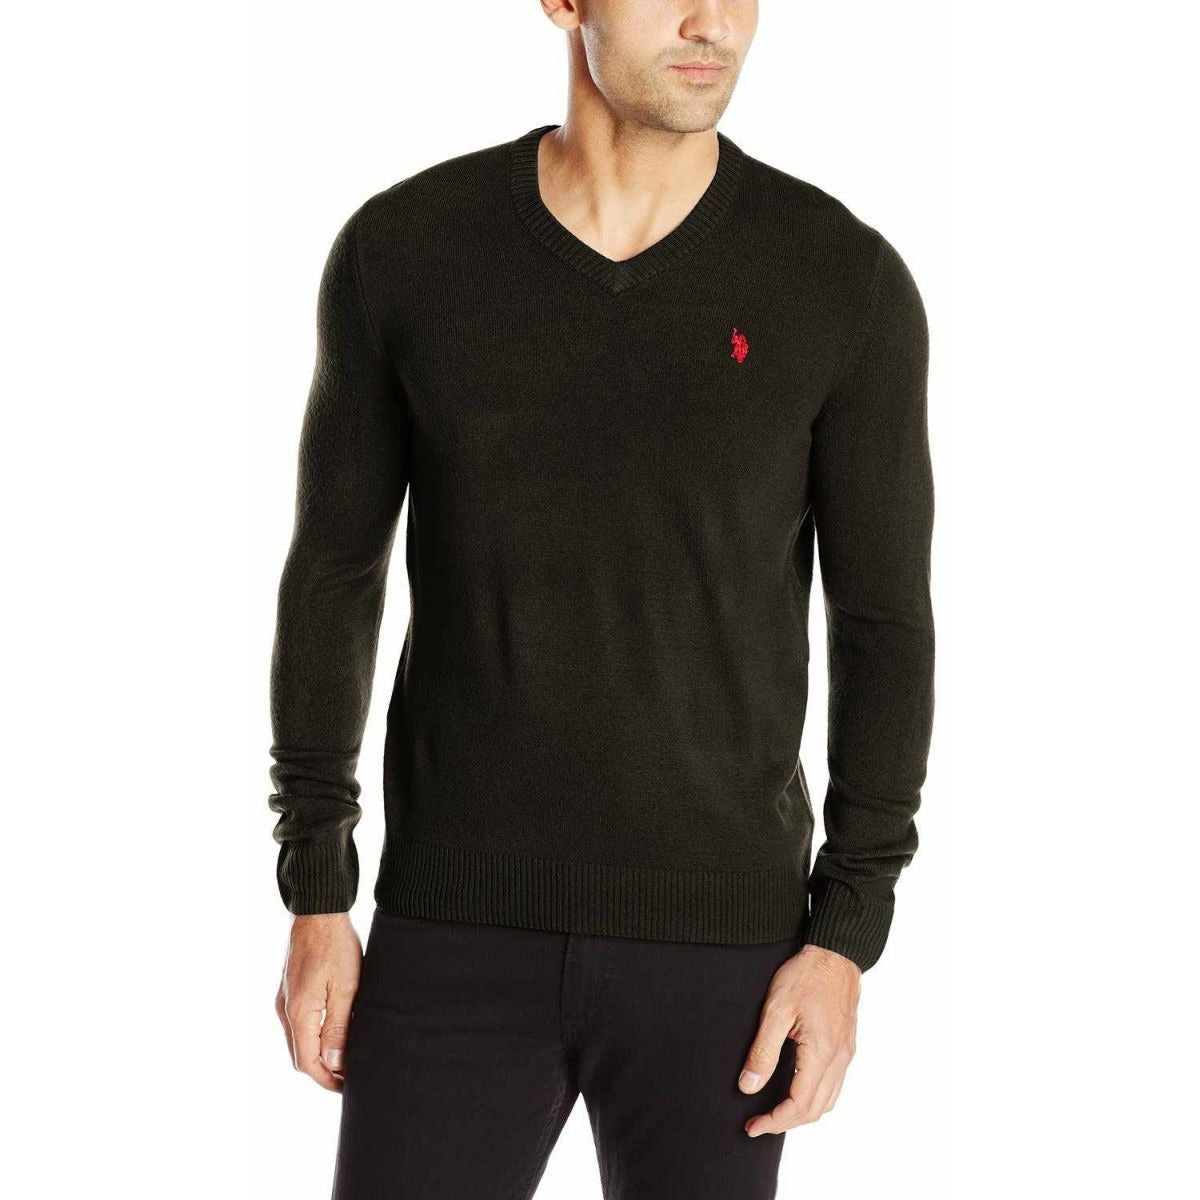 U.S. Polo Assn. Men Solid V-Neck Sweater Black